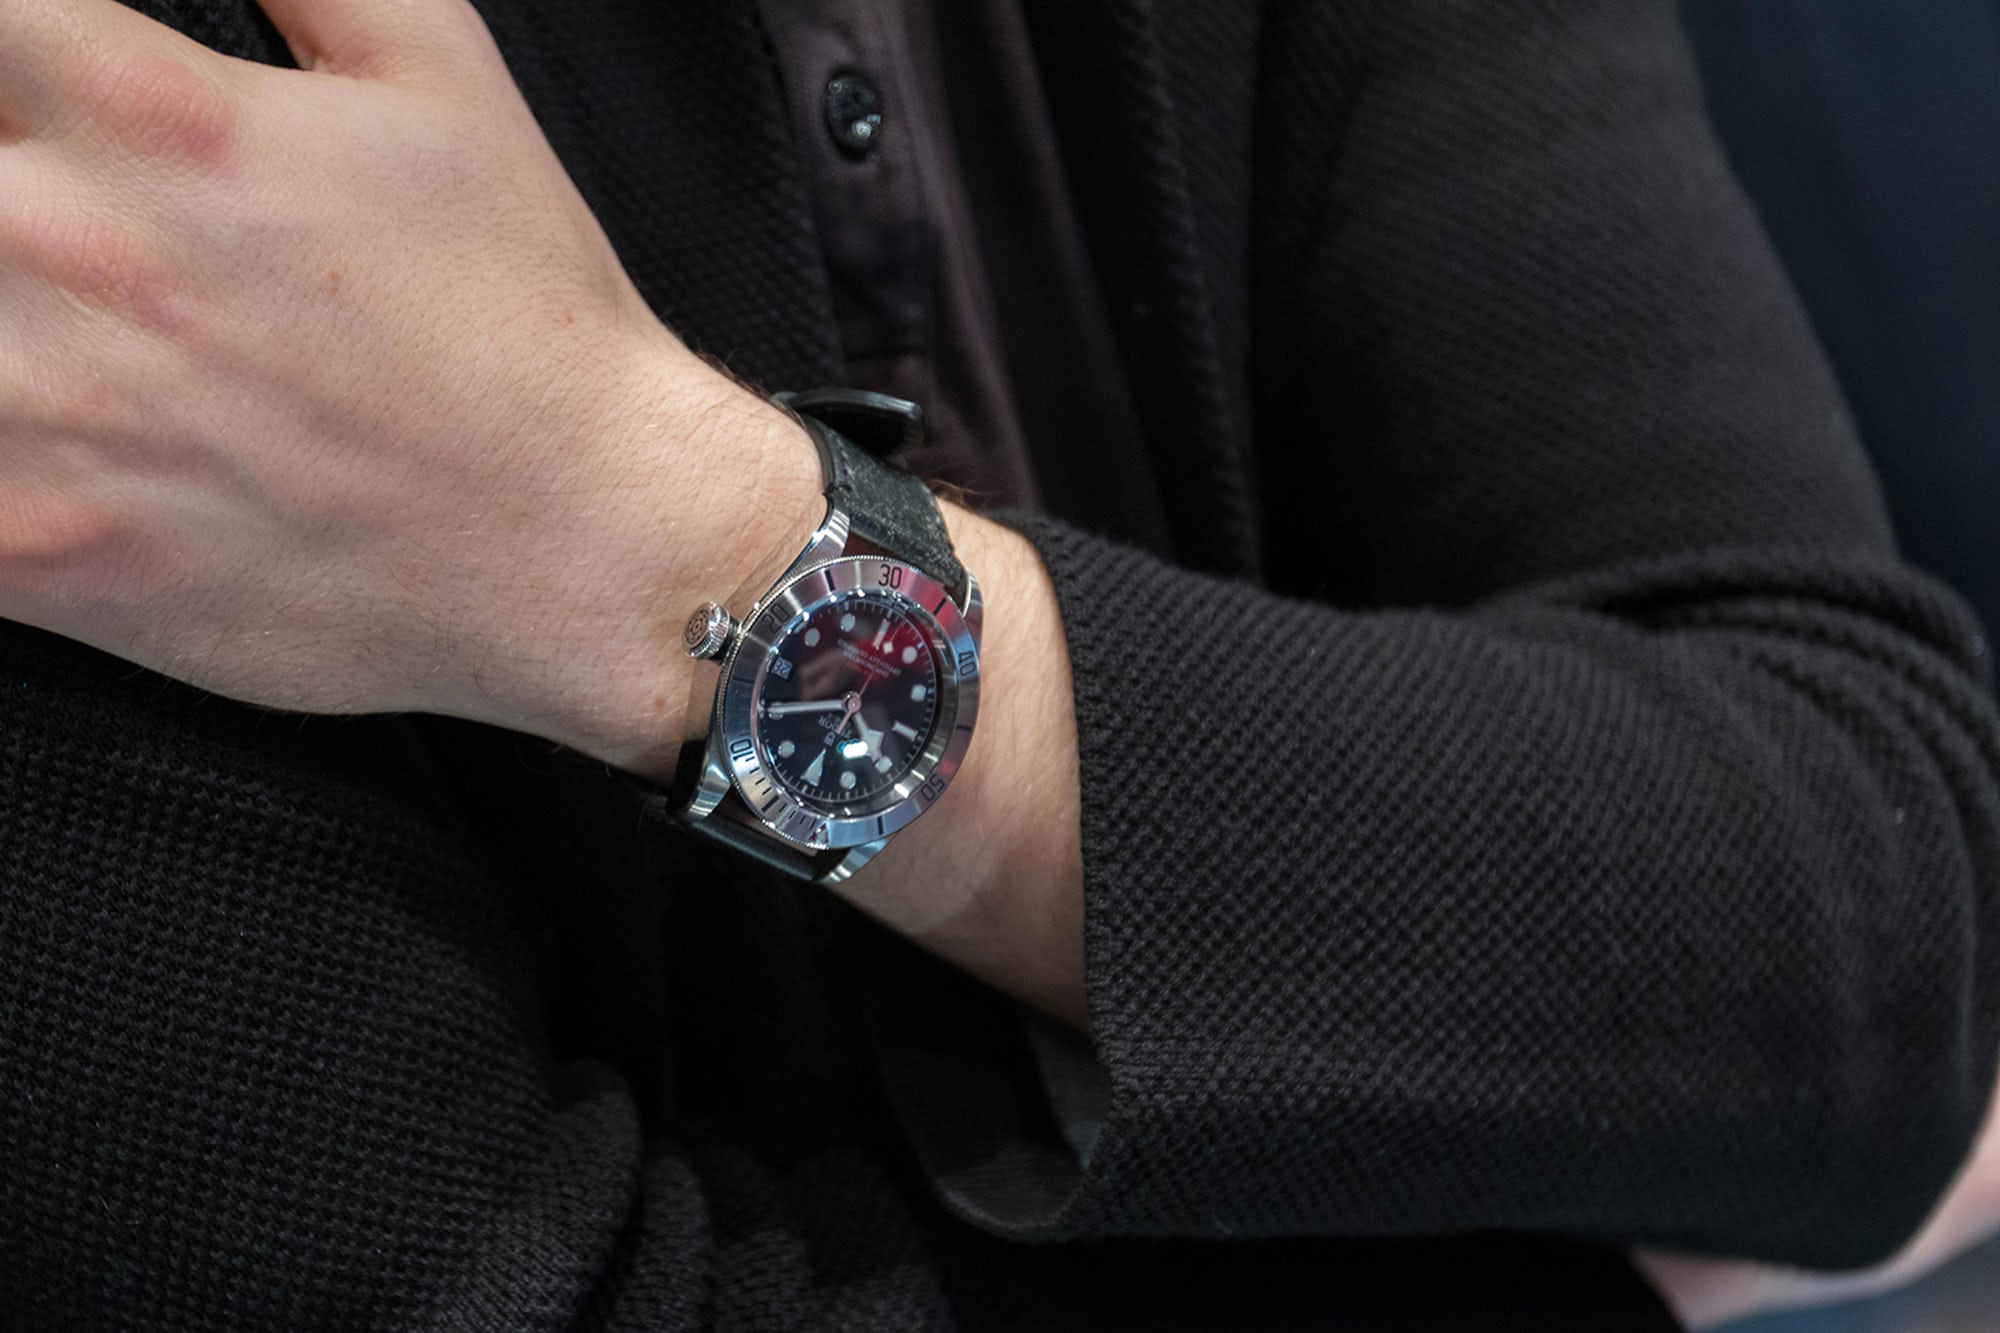 Photo Report: The Tudor Baselworld Novelties At Swiss Fine Timing In Chicago Photo Report: The Tudor Baselworld Novelties At Swiss Fine Timing In Chicago People Interactions Watches only 3